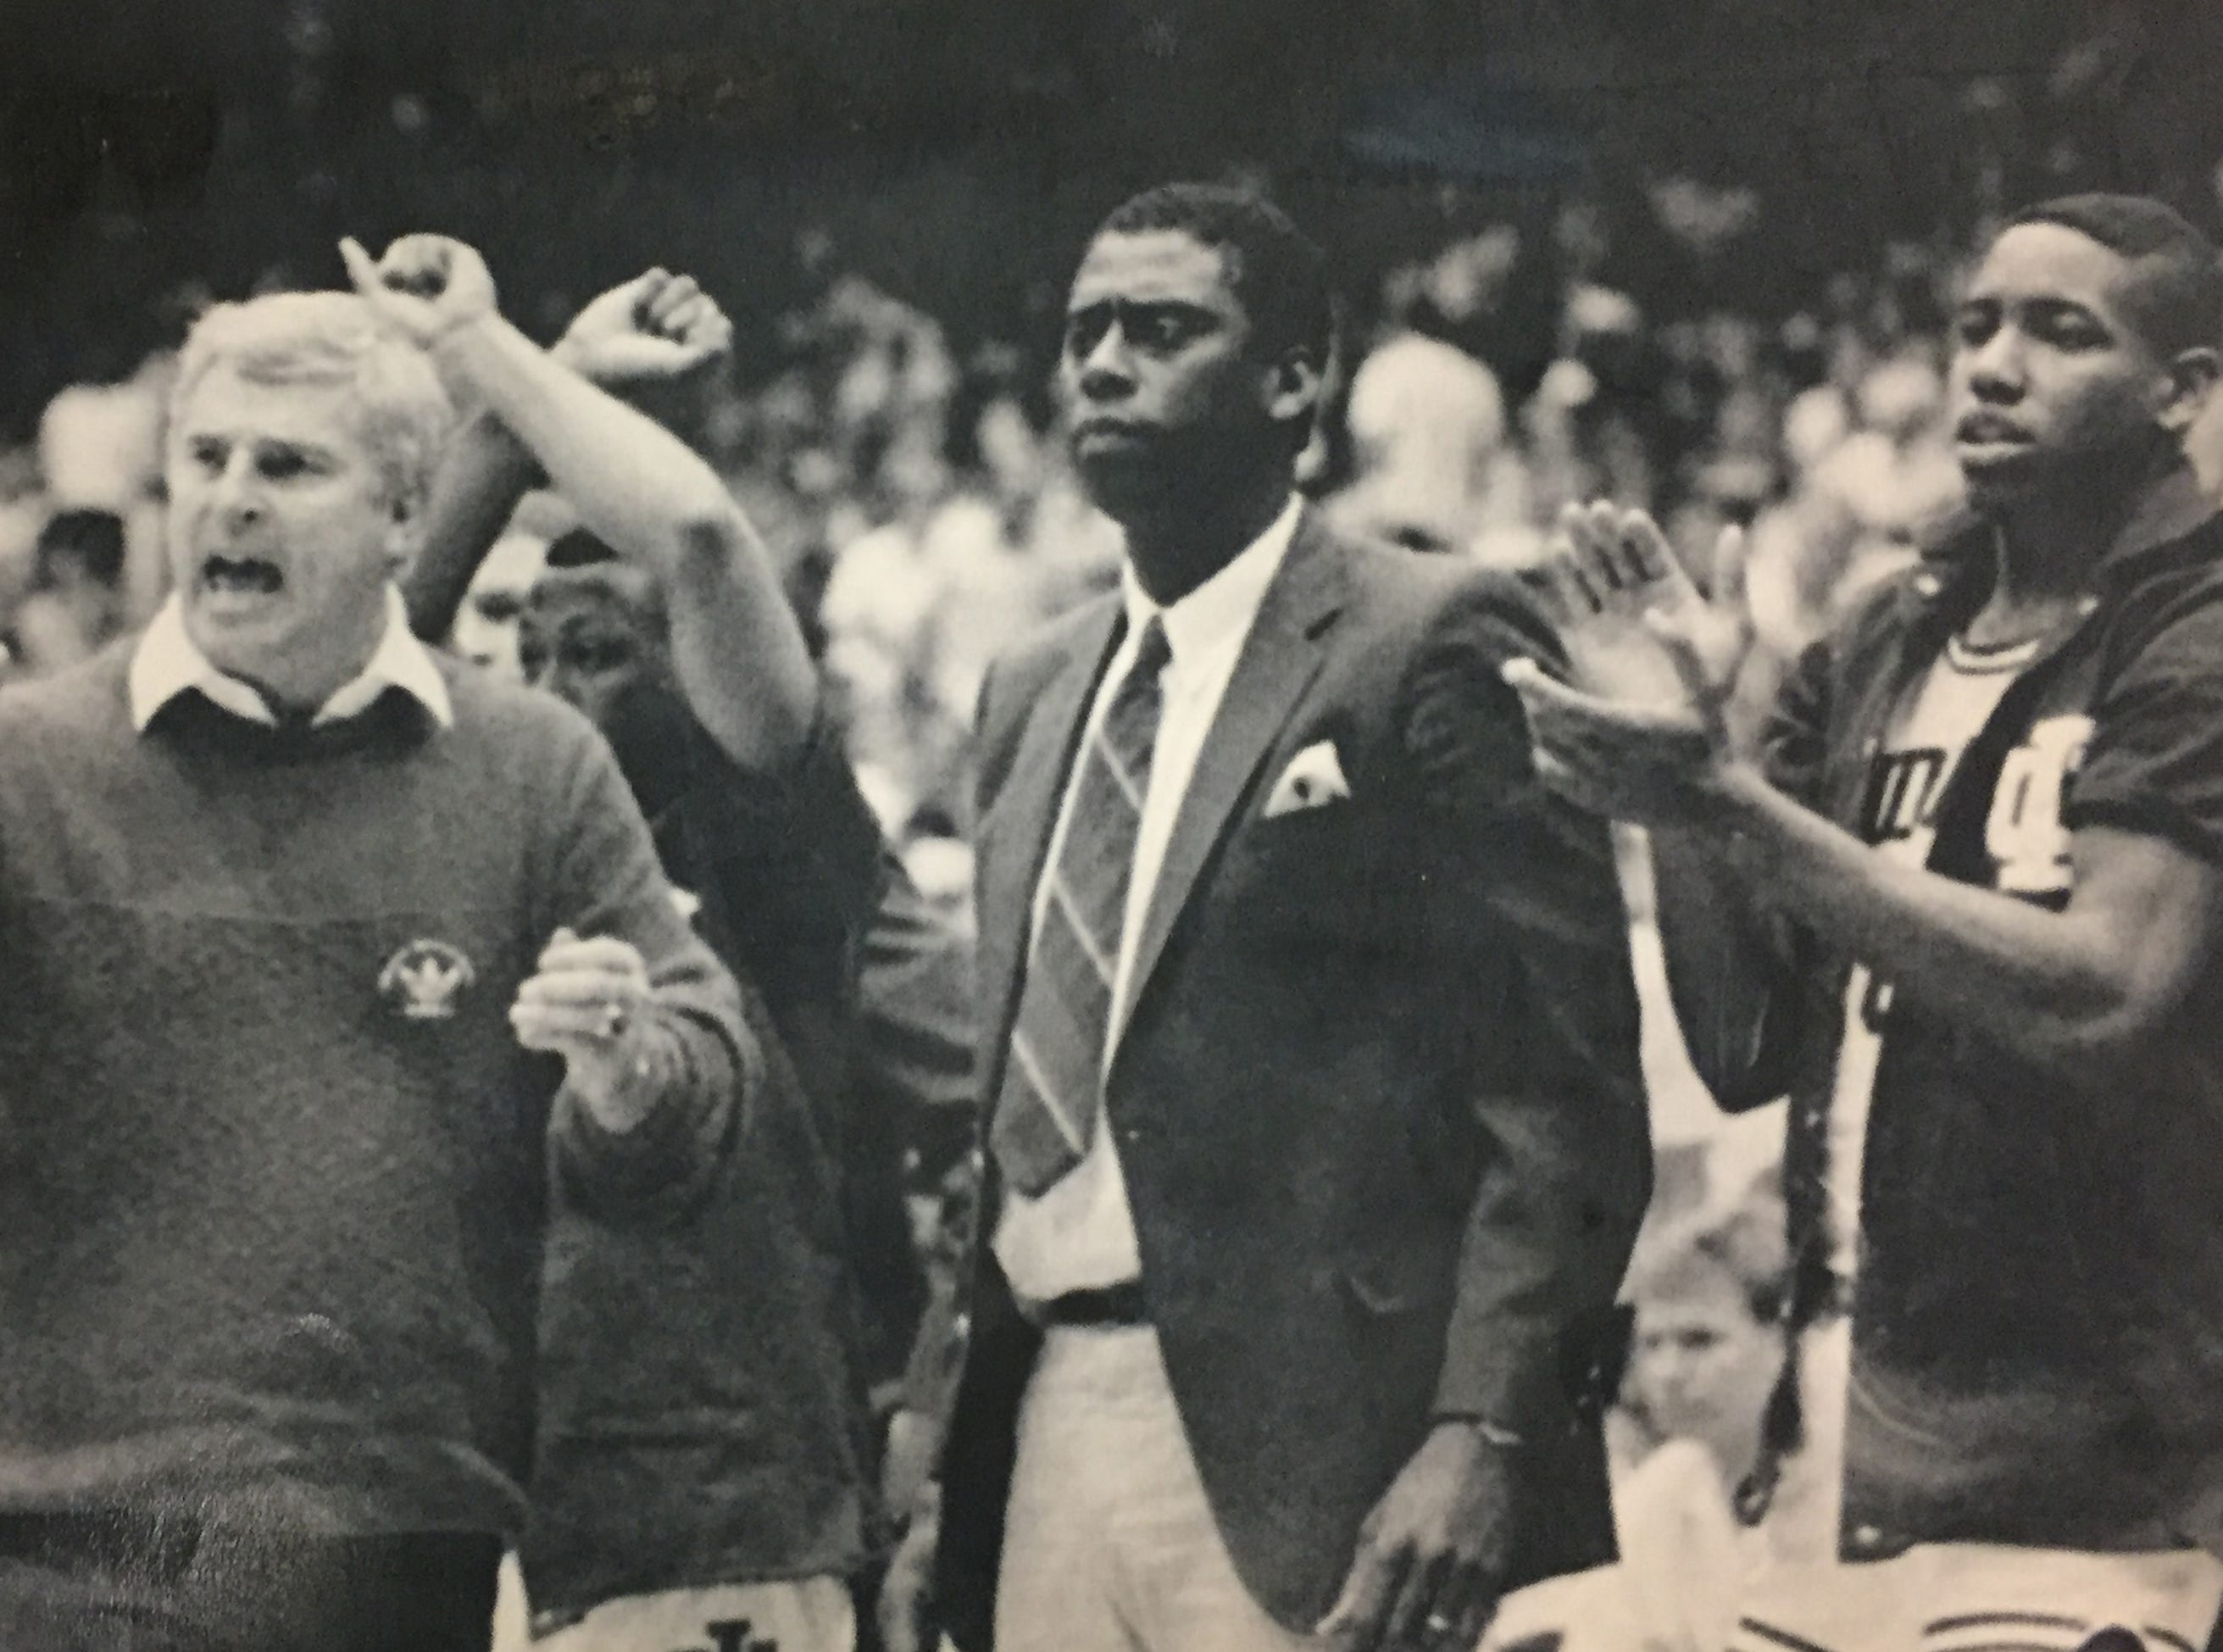 Bob Knight applauds the effort of his team late in the game against UTEP. Assistant coach Joby Wright and Mark Robinson concur on March 19, 1989.